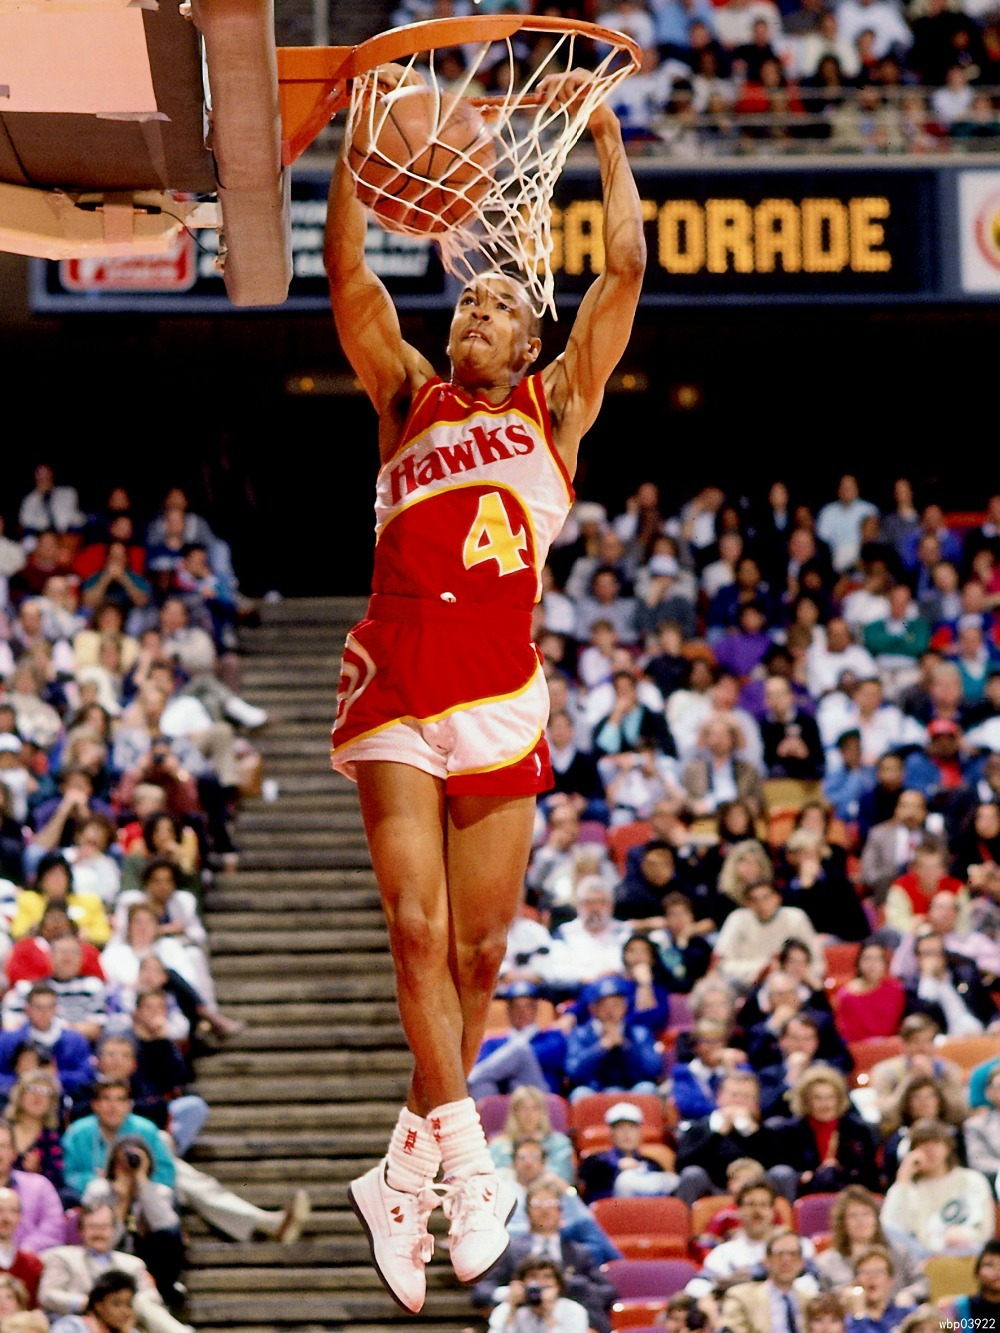 Spud Webb to Appear at The Solexchange National Sneaker Convention